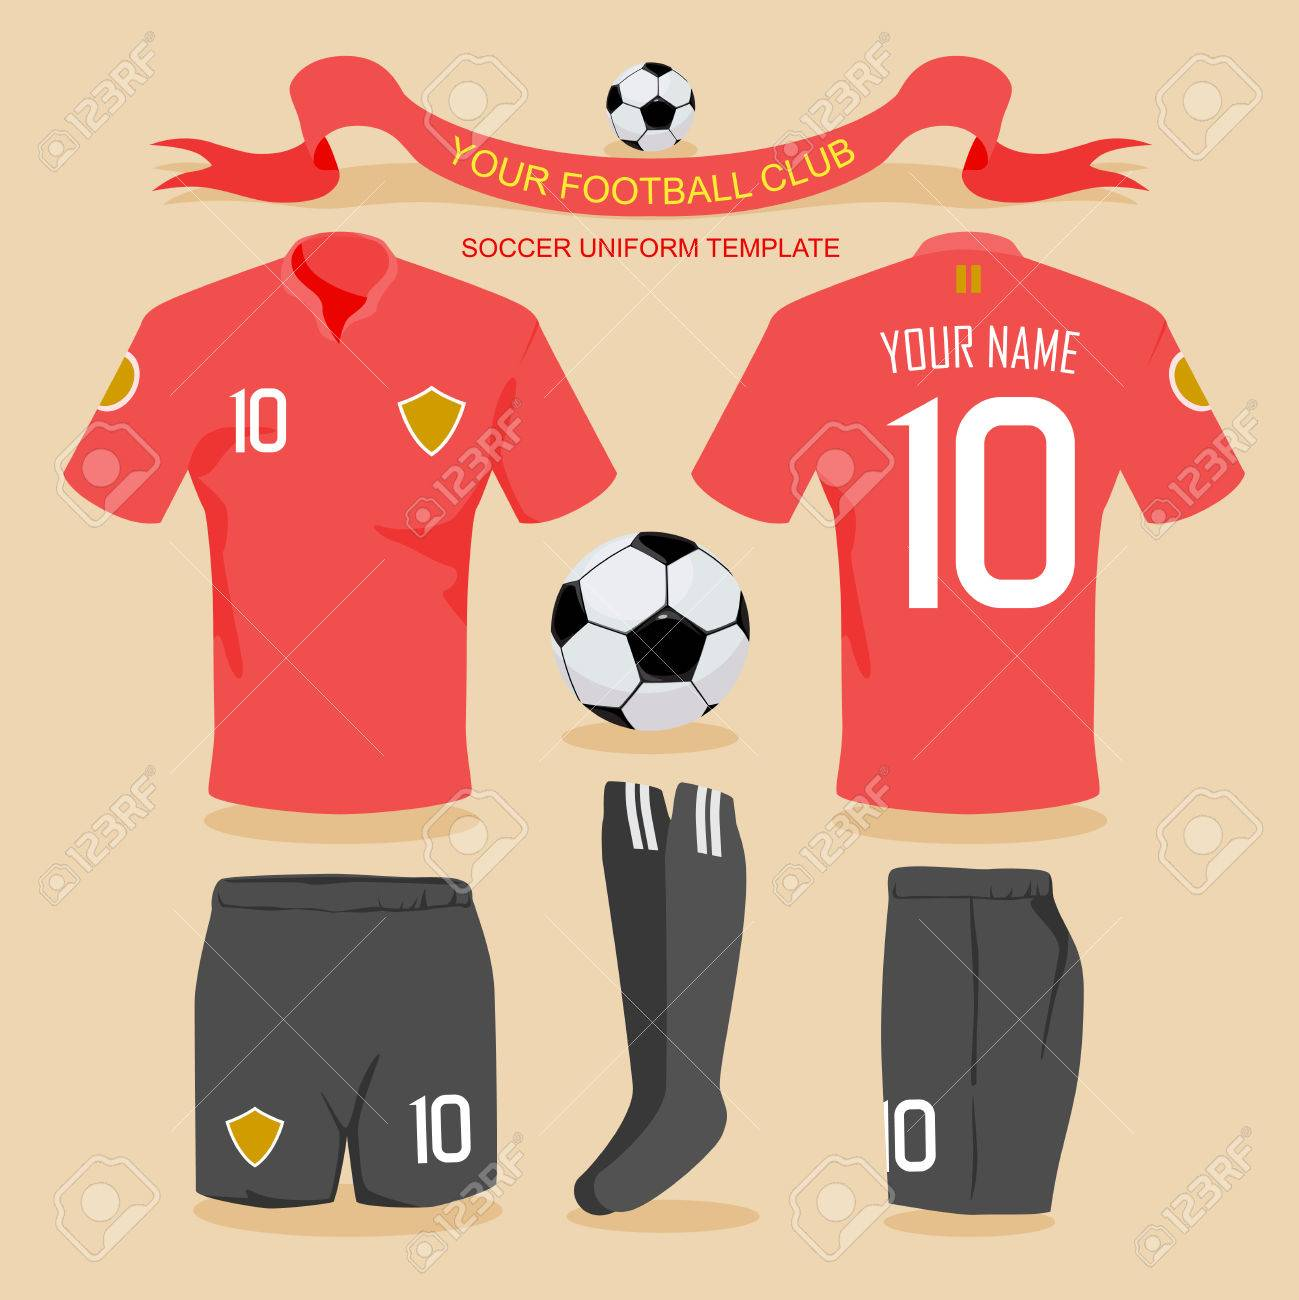 Soccer uniform template for your football club, illustration by vector design. - 40044347